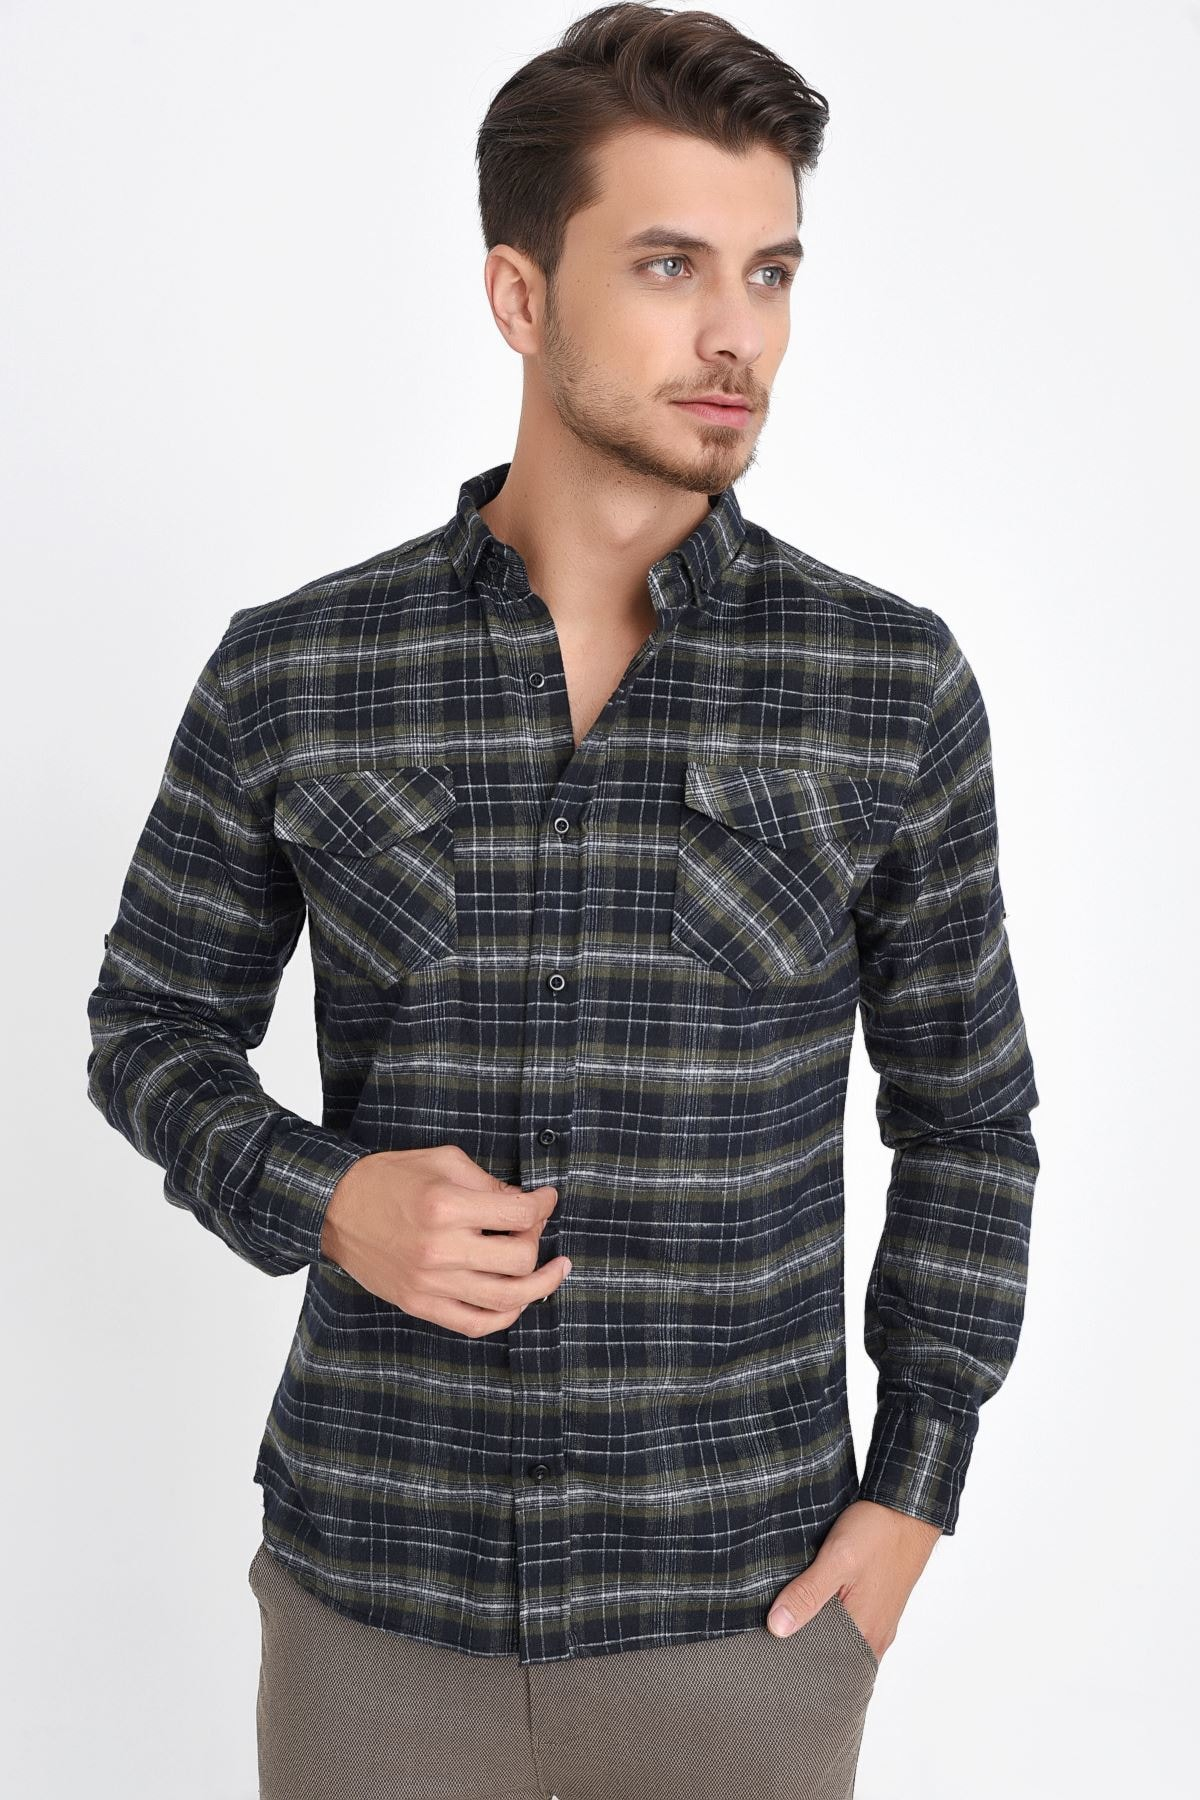 Plaid Wool Men's Shirt P-00006205